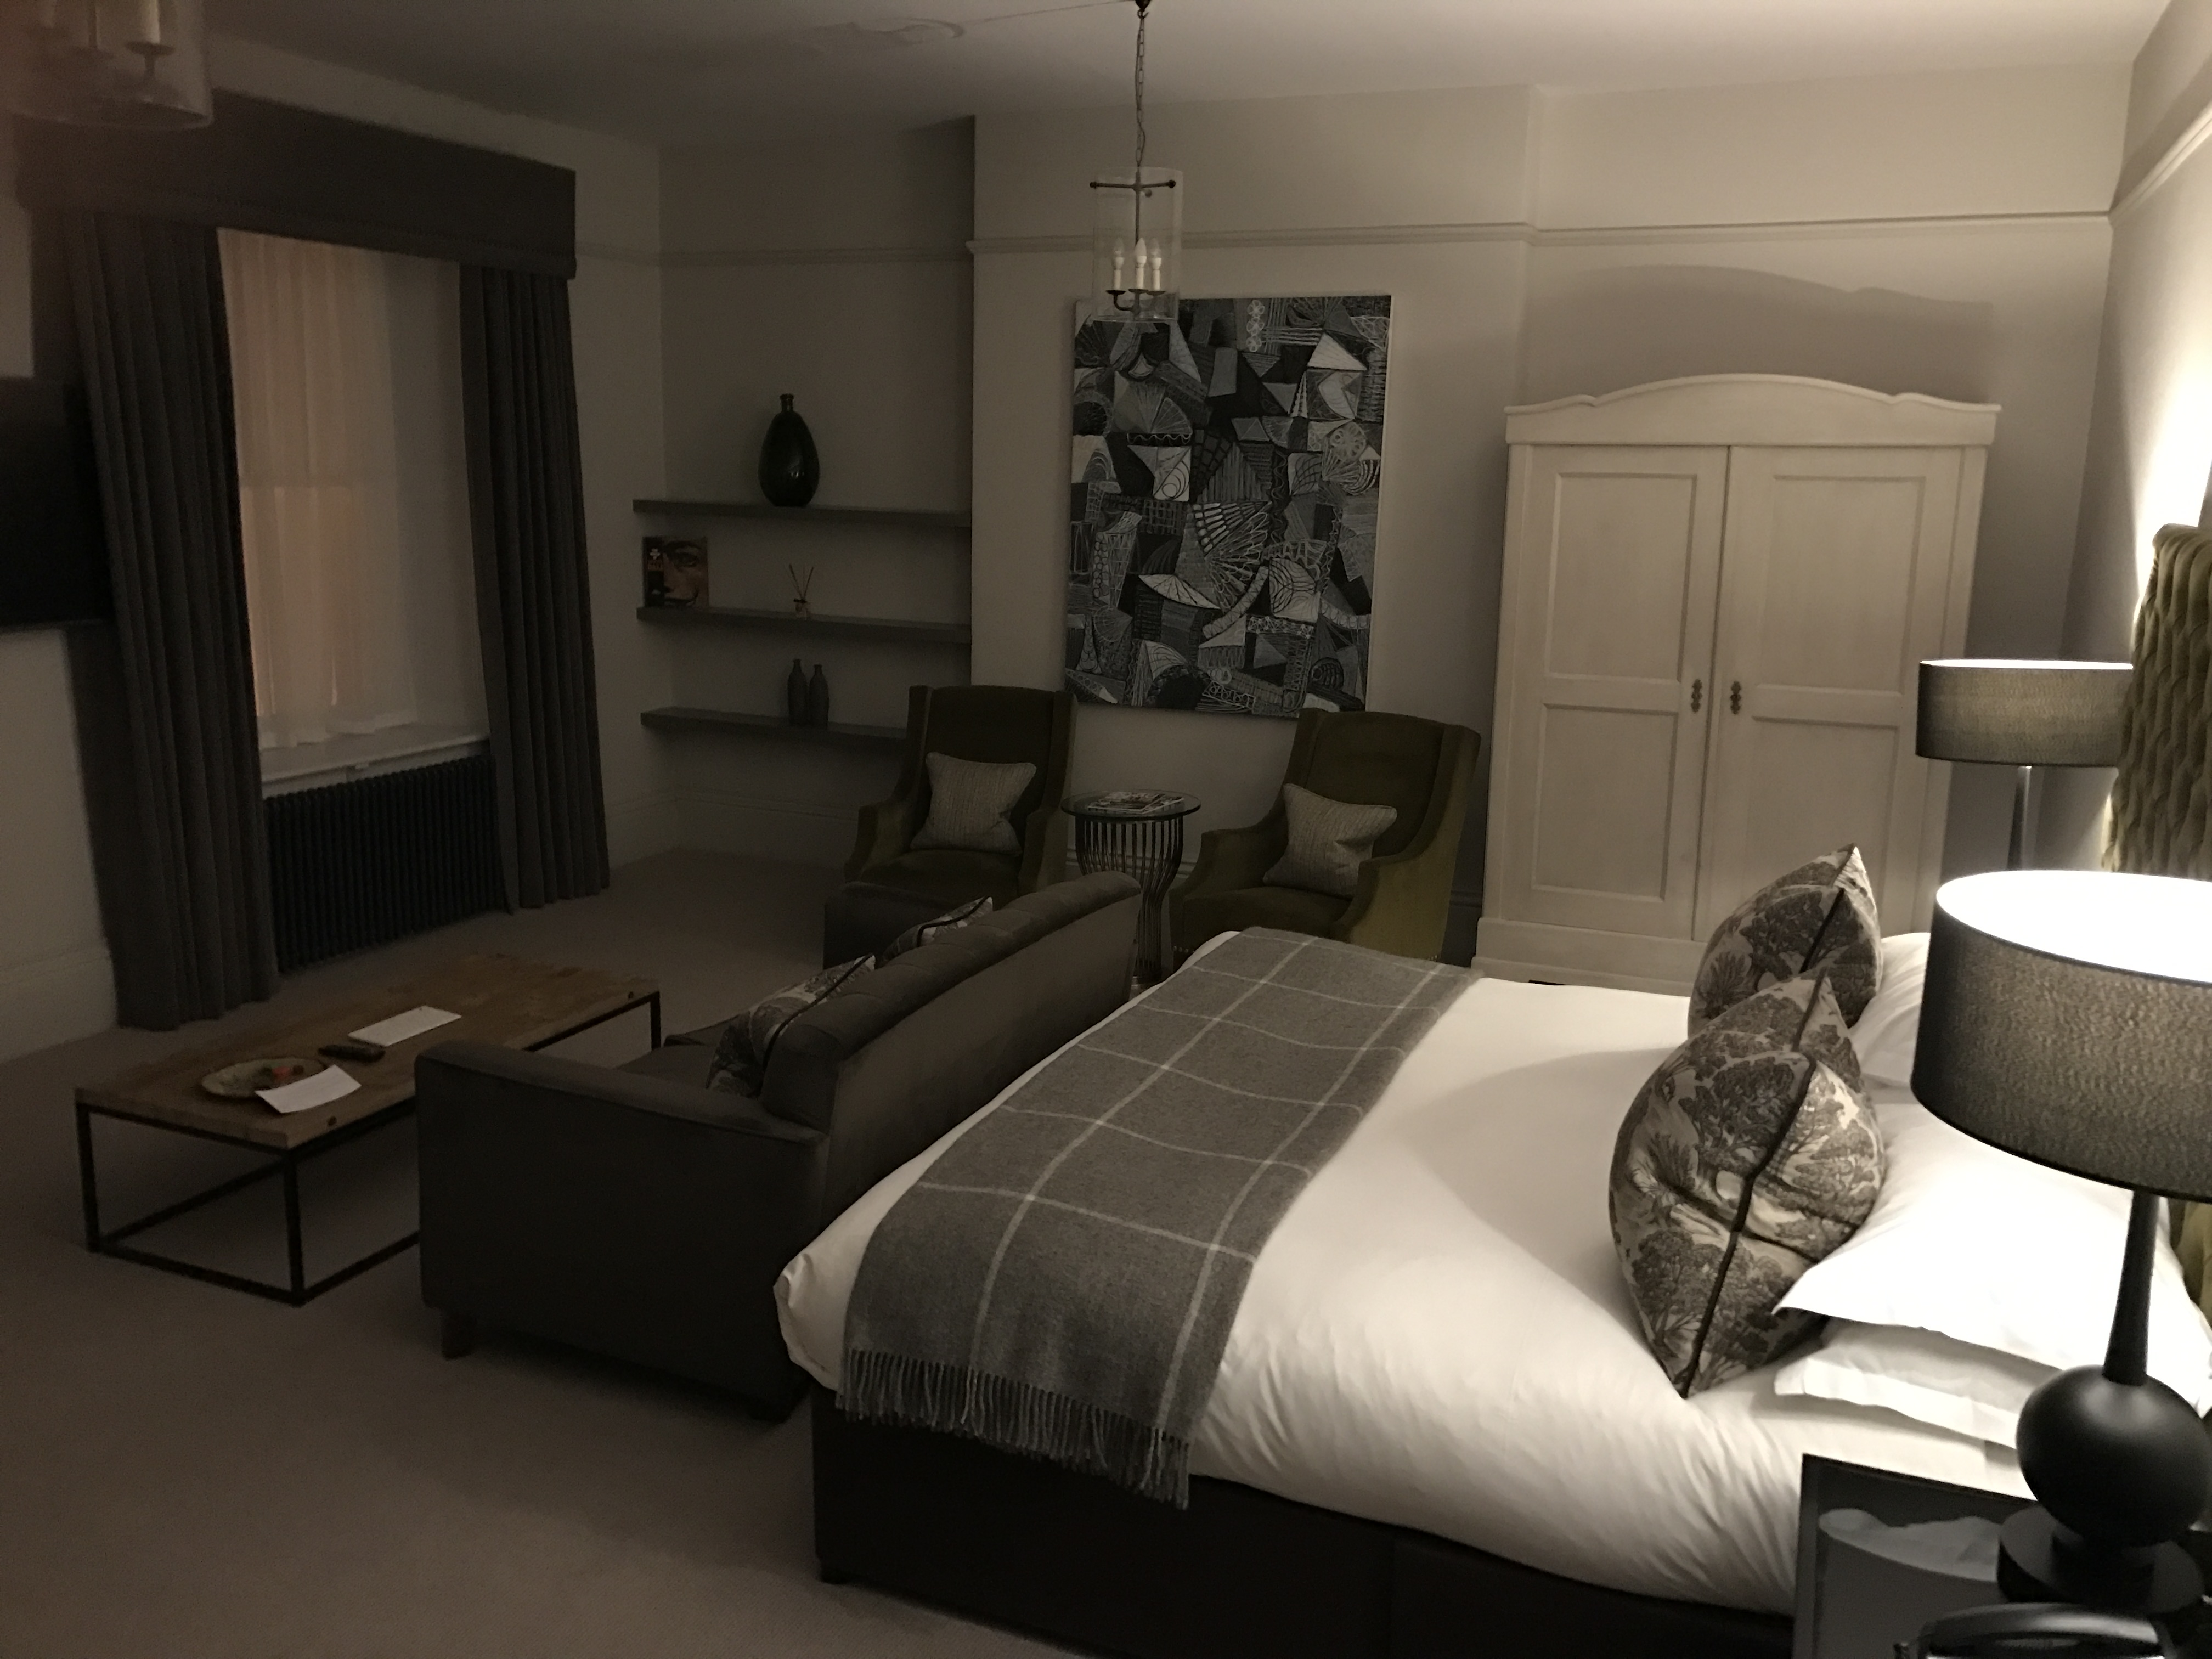 had a bit of a journey back home i was really happy to just walk up a flight of stairs and find my indulgence room ready for me to get comfy in